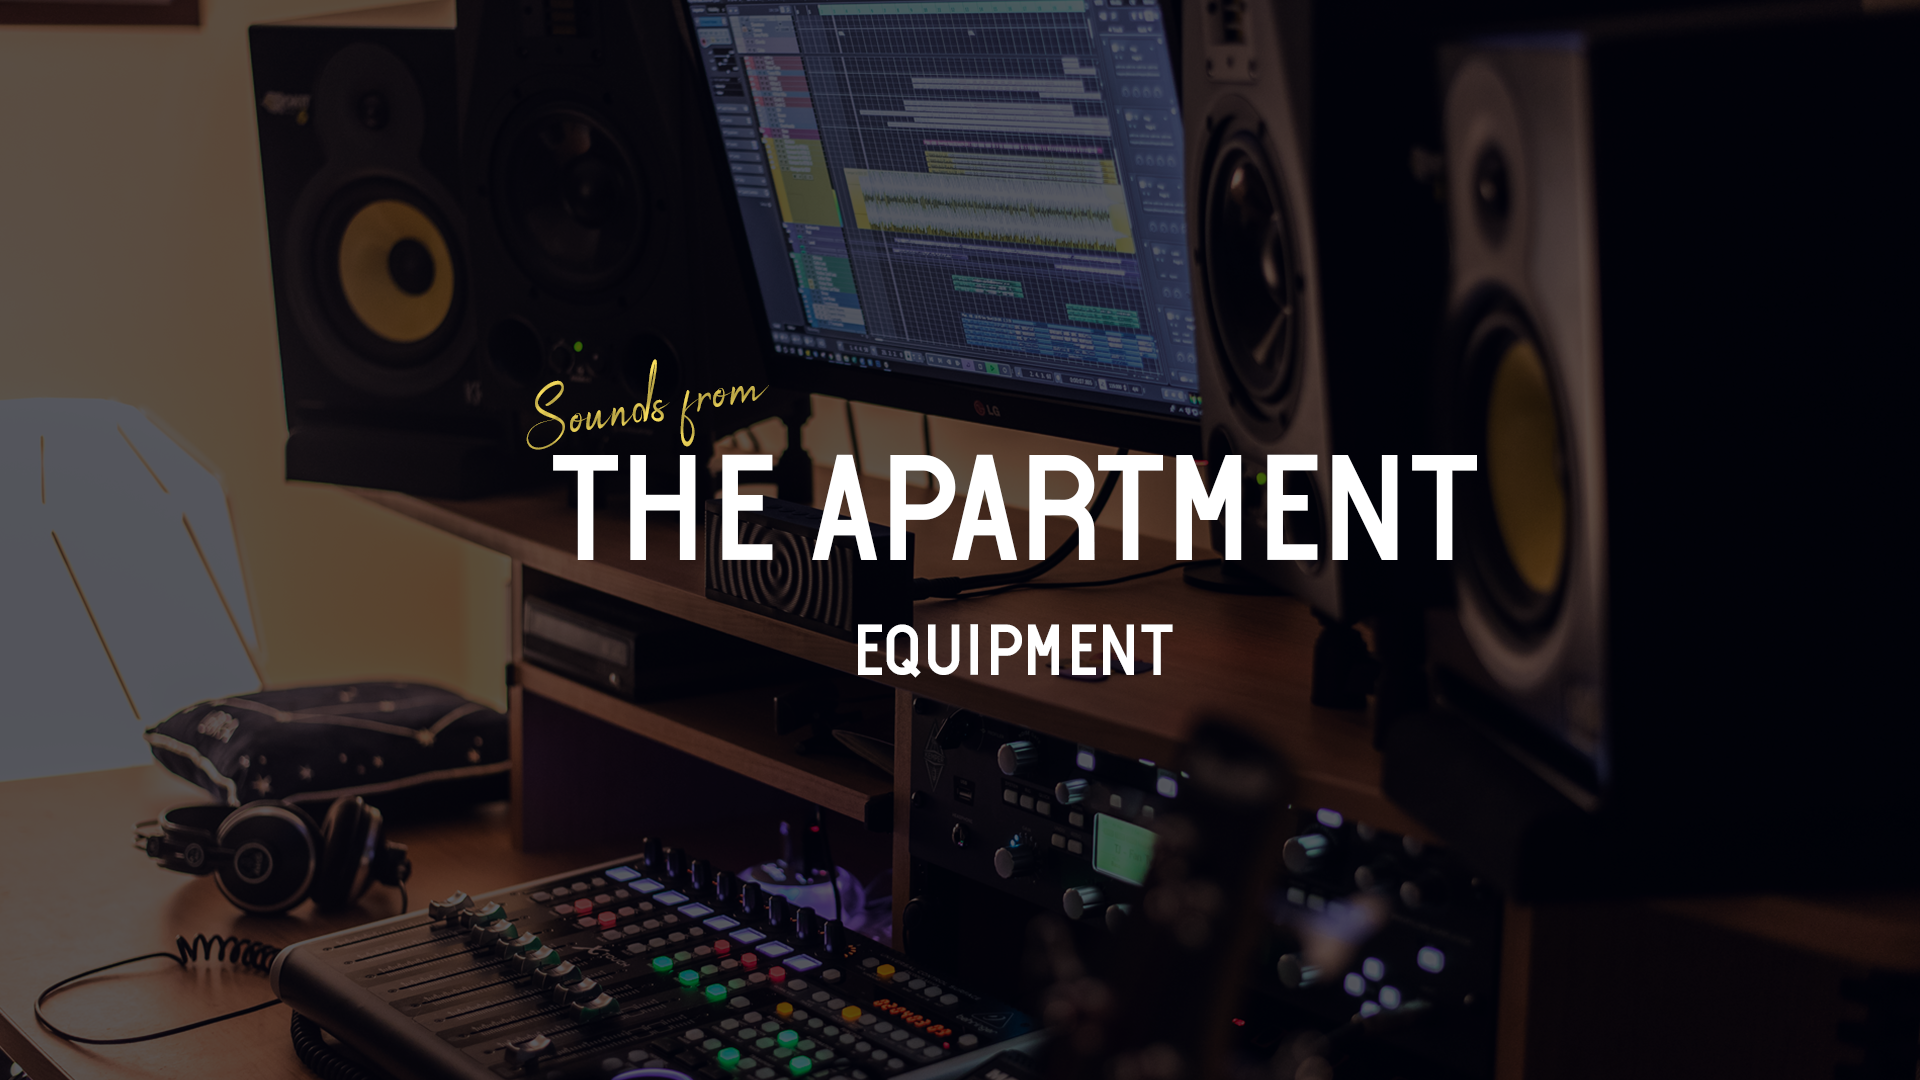 Sounds from the apartment article equipment